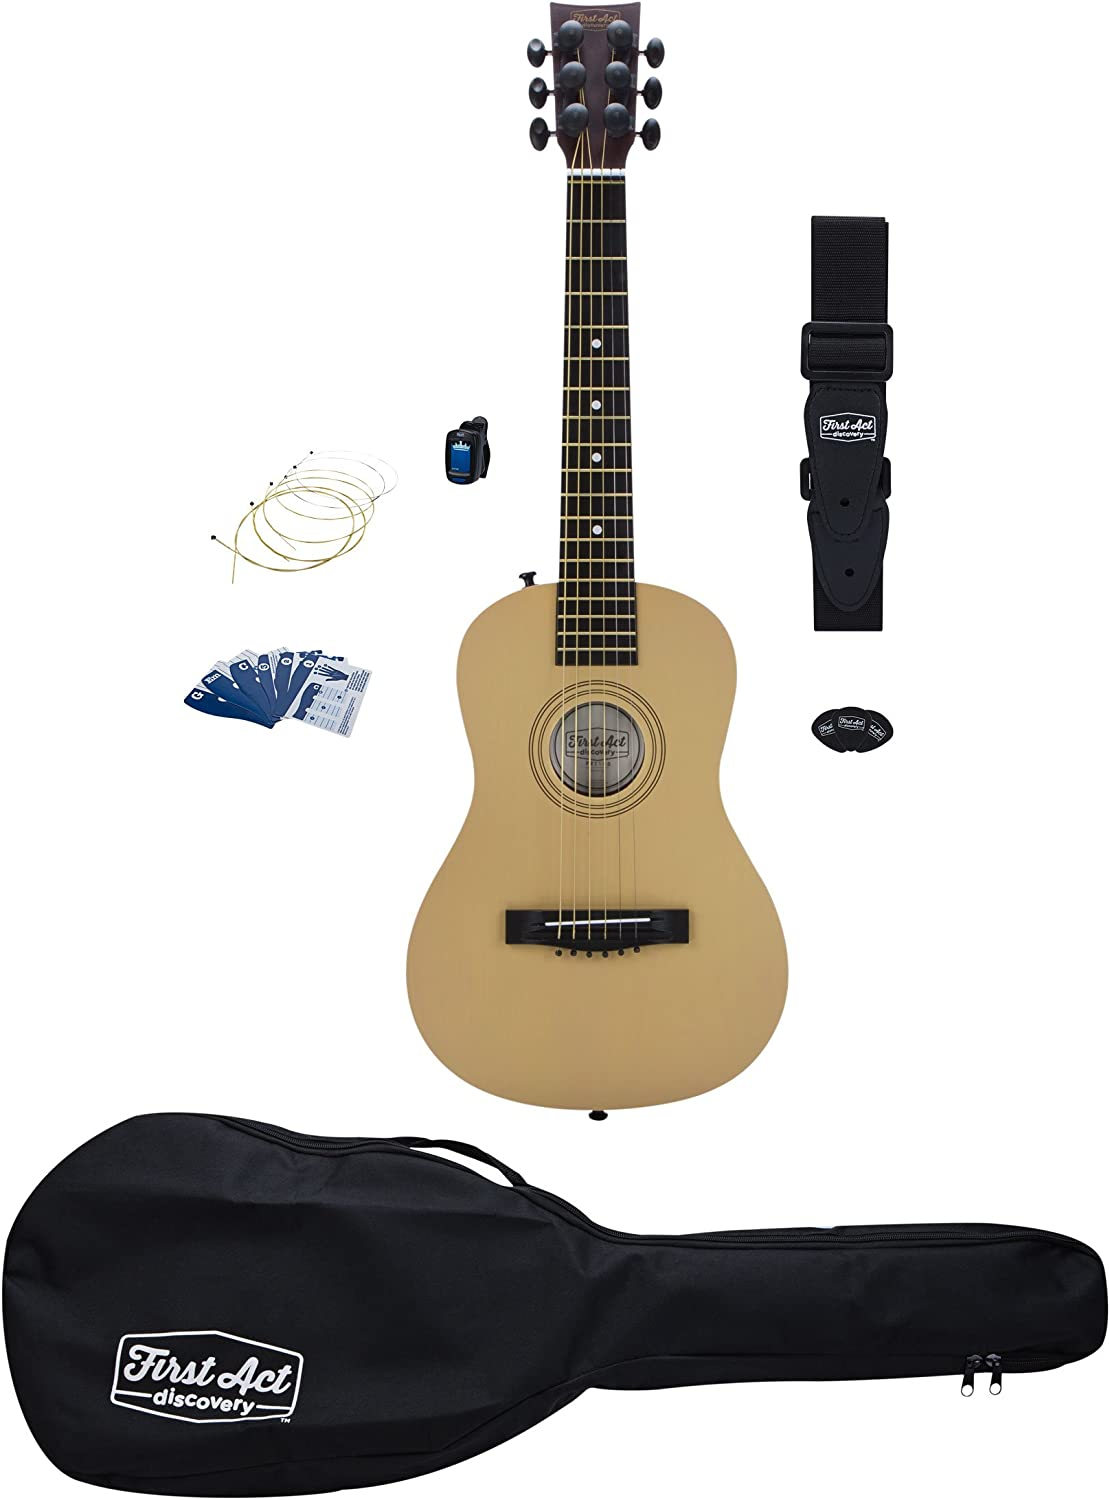 Top 10 Best First Act Acoustic & Electric Guitar Reviews in 2020 10